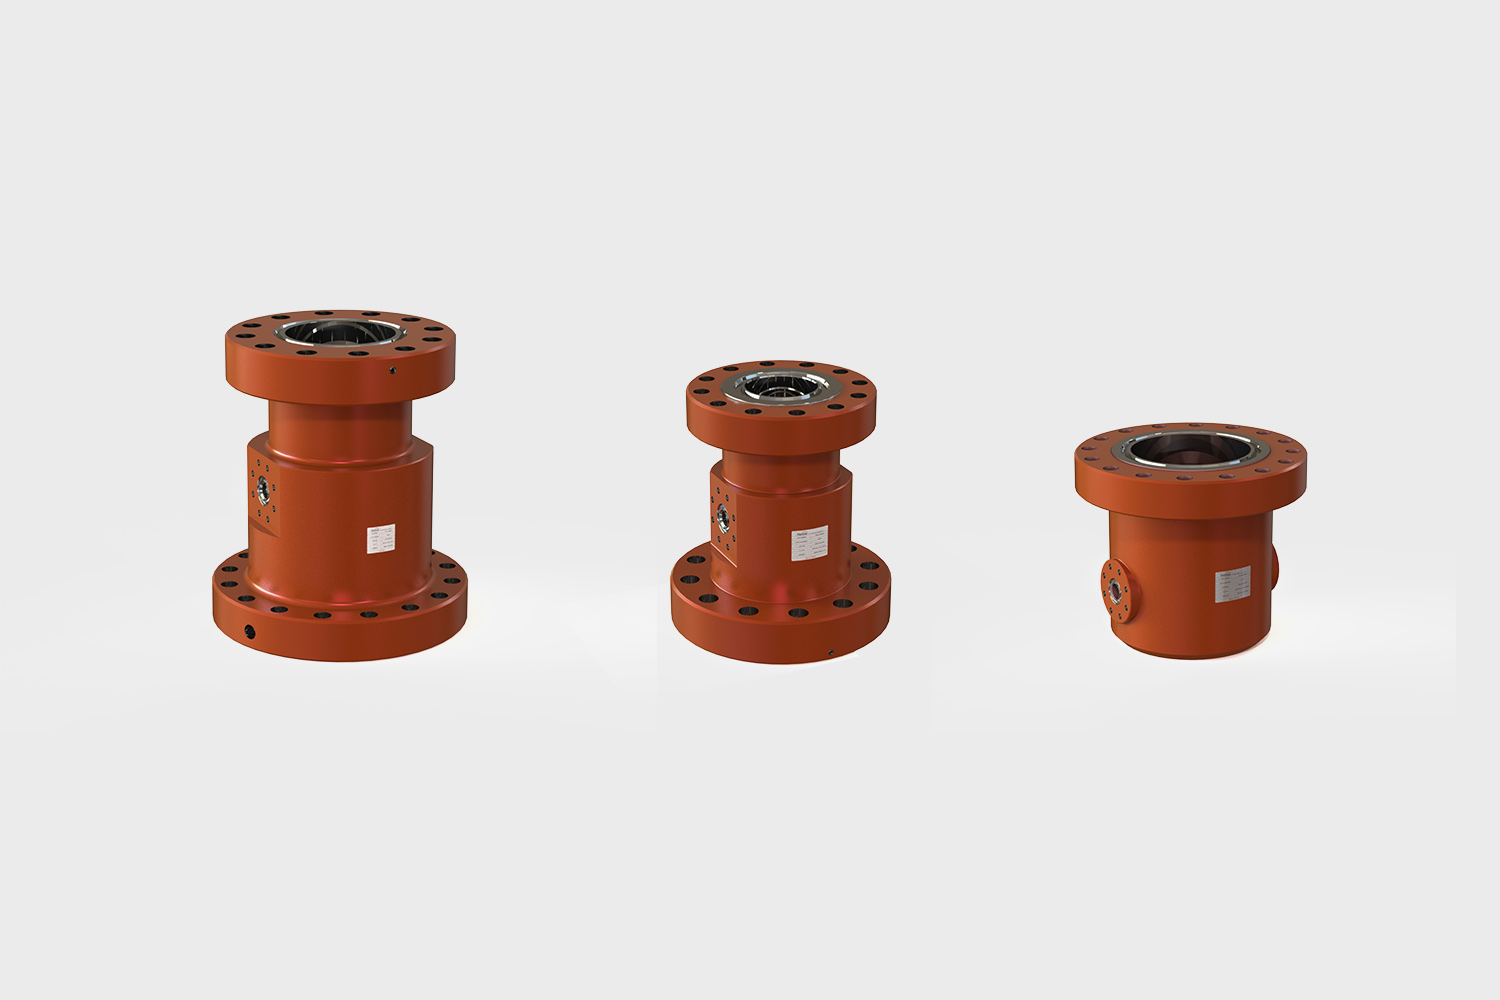 Casing Heads, Casing Spools and Tubing Spools